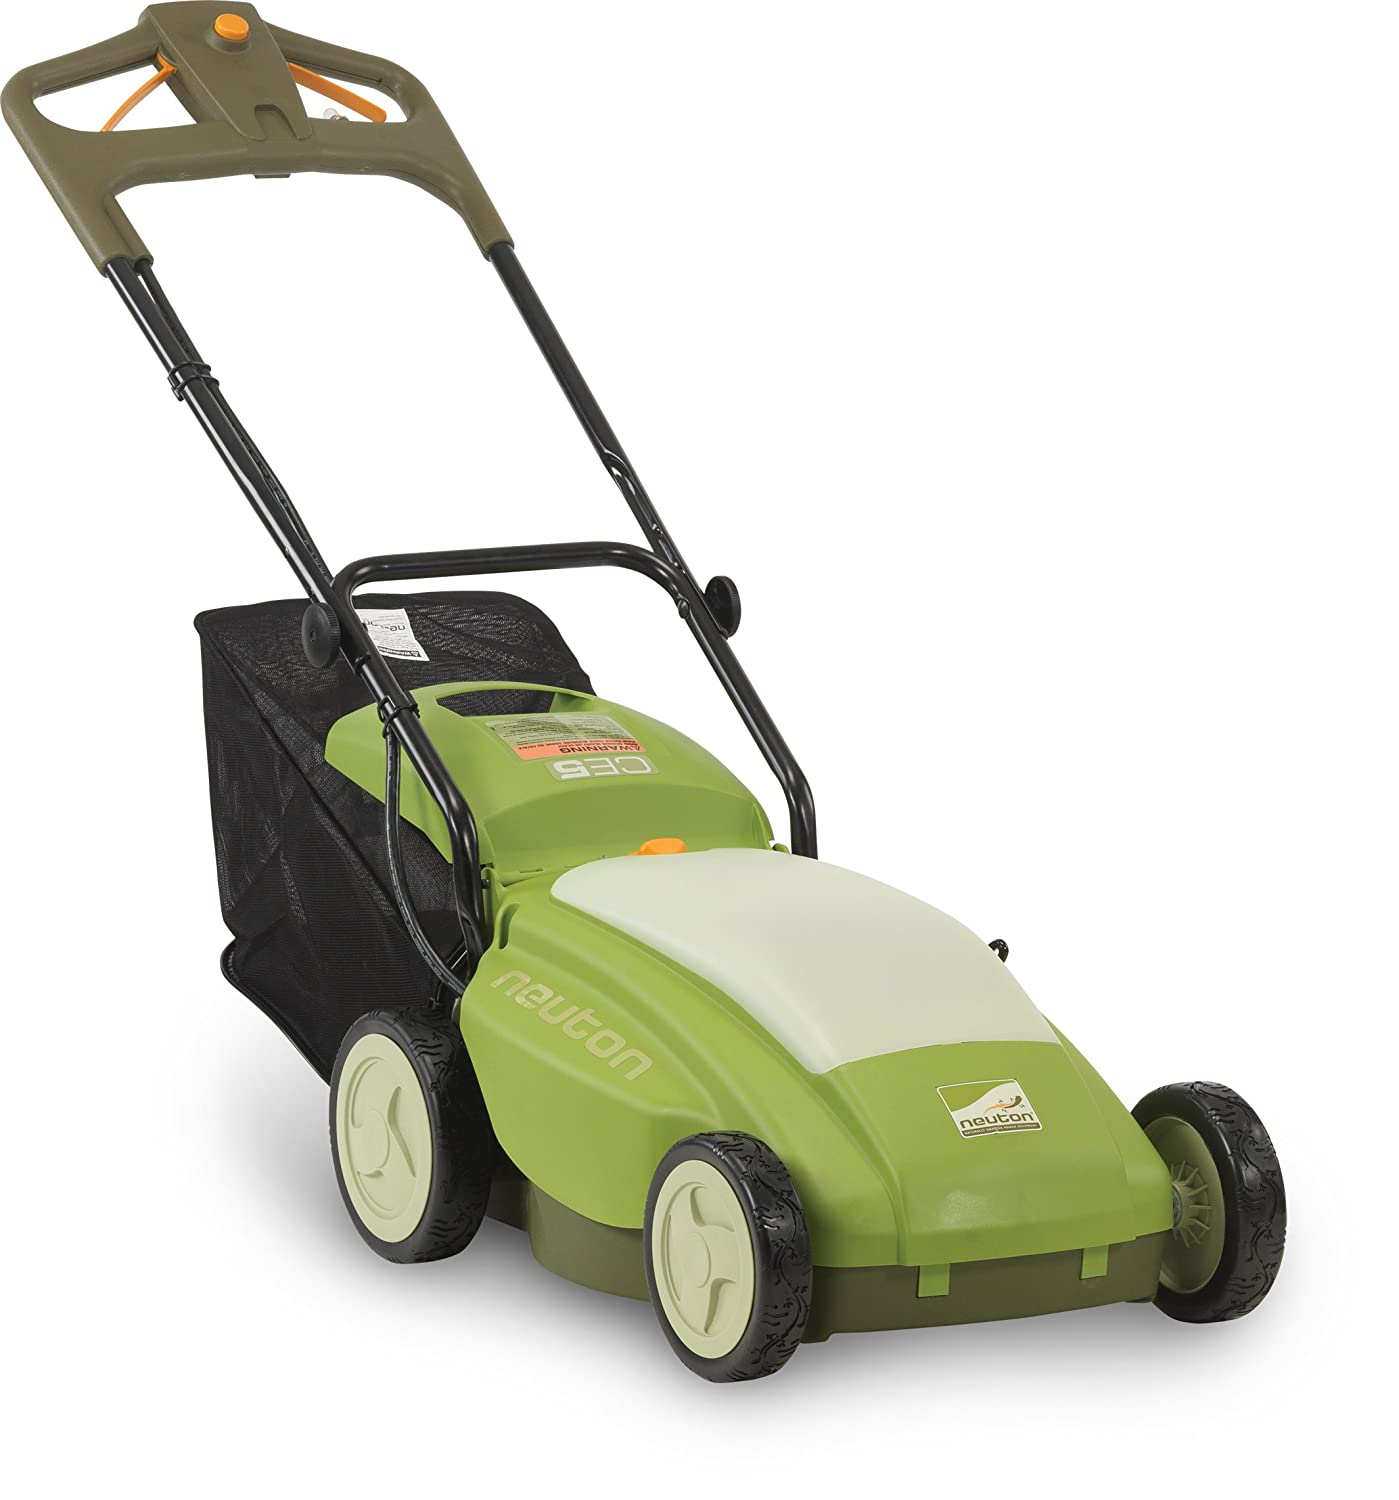 Neuton electric lawn mower ce 5 4 with for Lawn mower electric motor